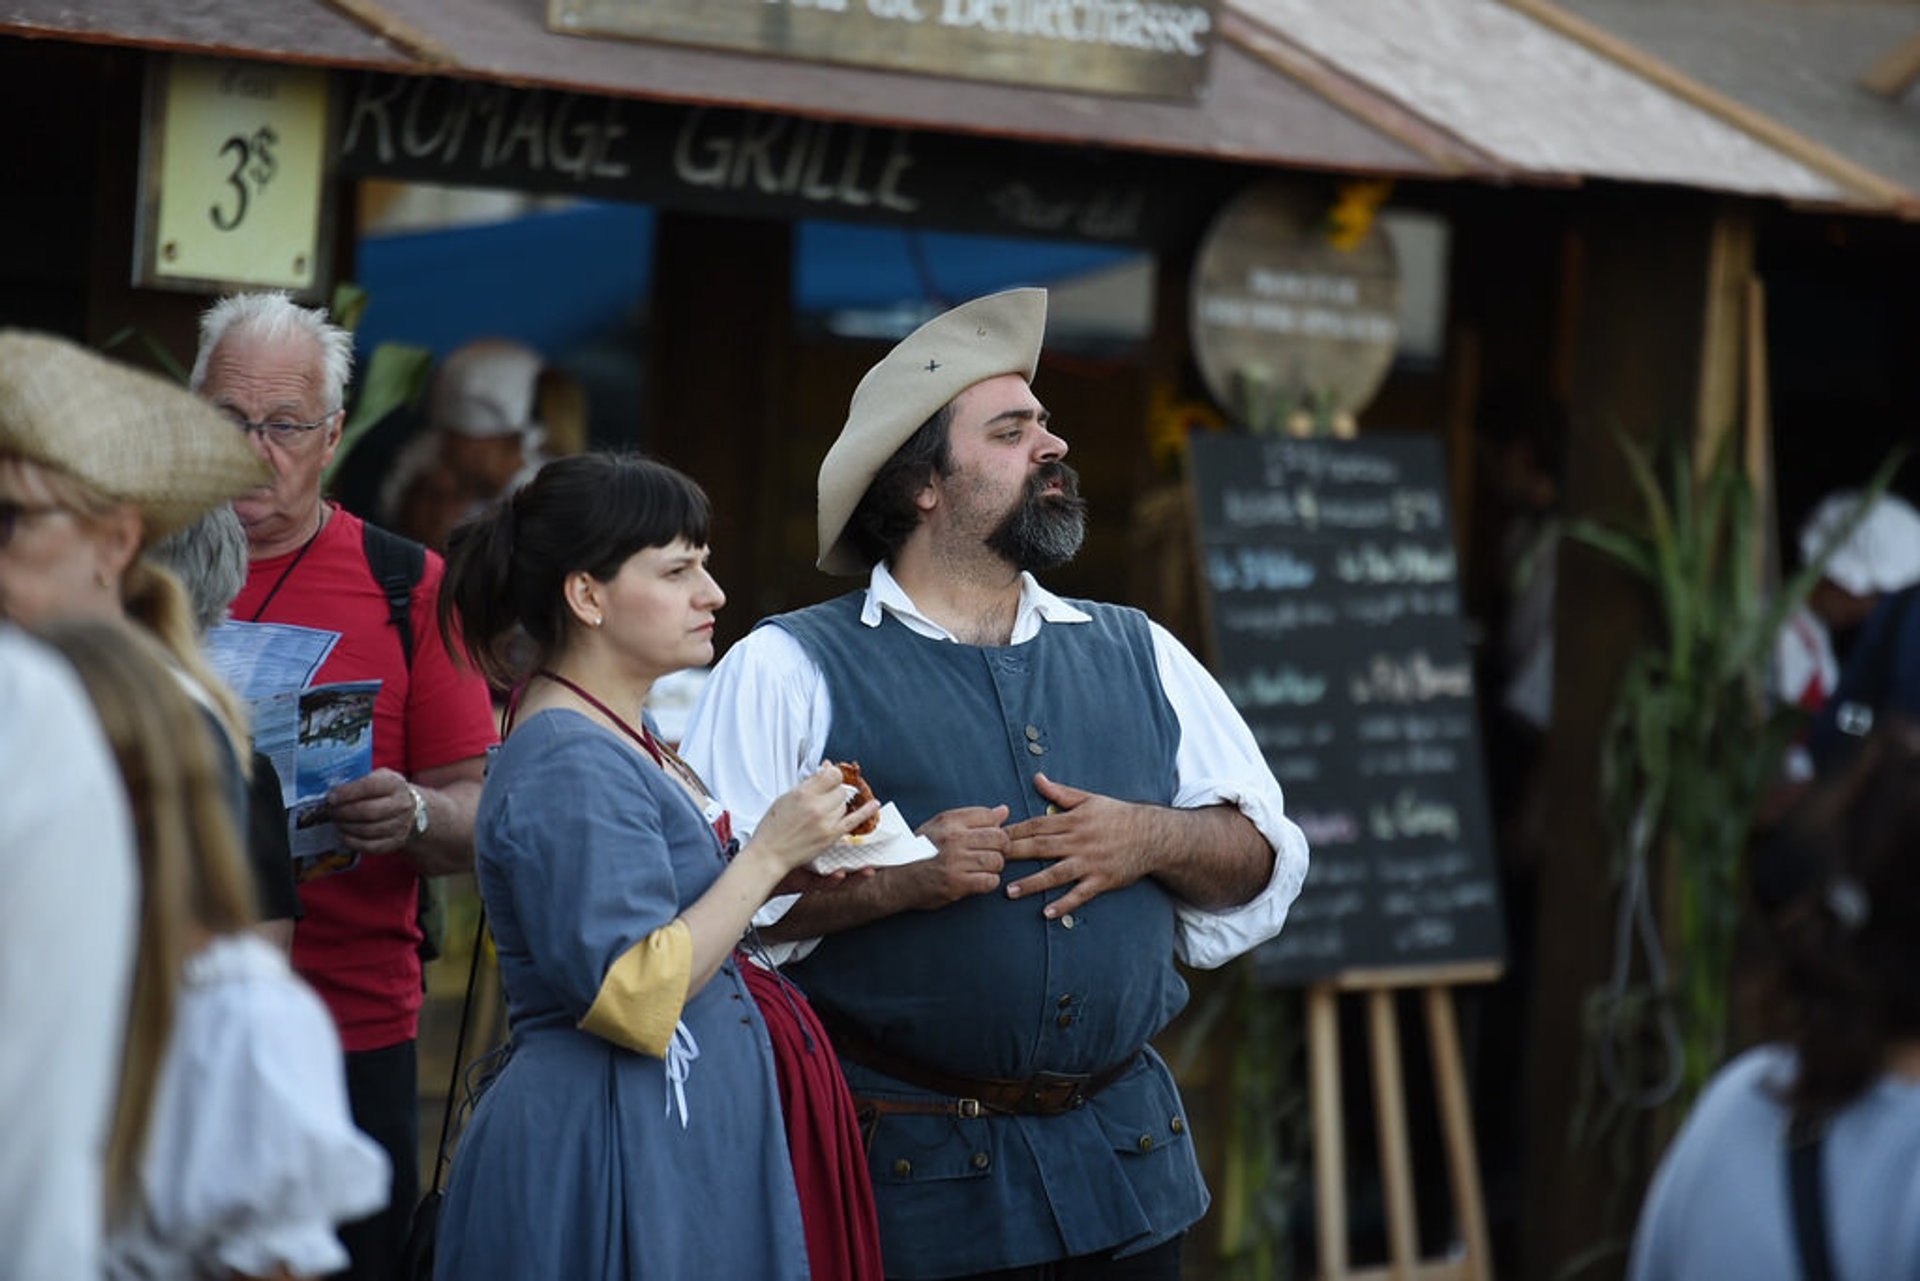 New France Festival (Fêtes de la Nouvelle-France) in Quebec - Best Season 2019